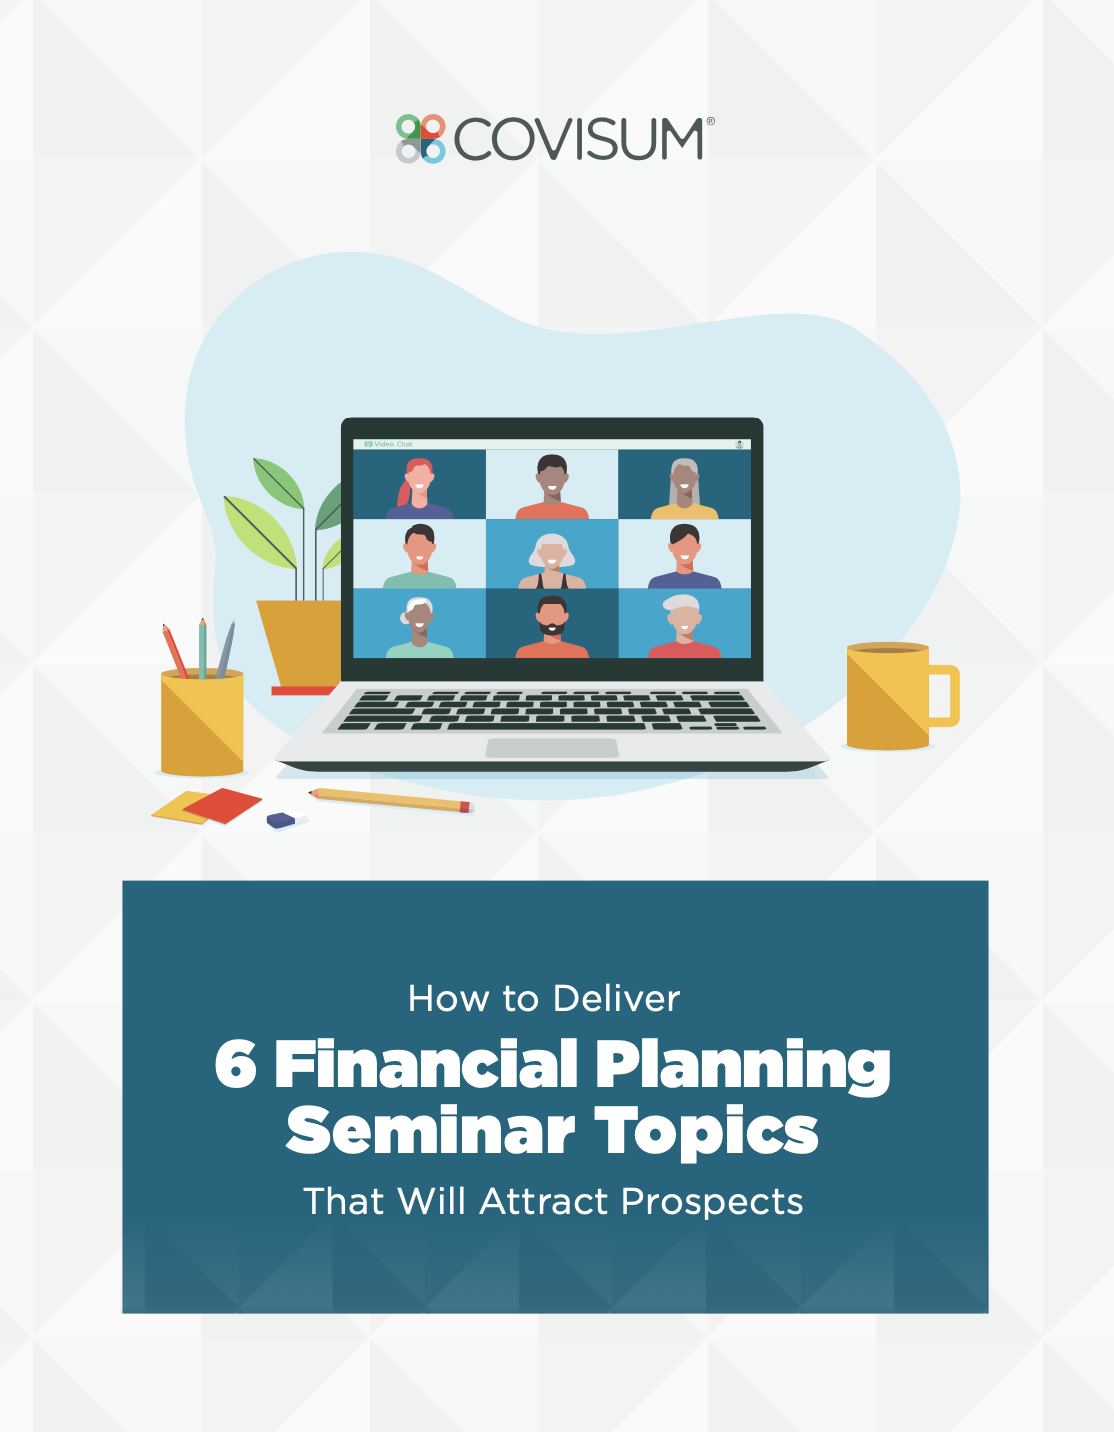 Financial Planning Seminar Topics That Will Attract Prospects